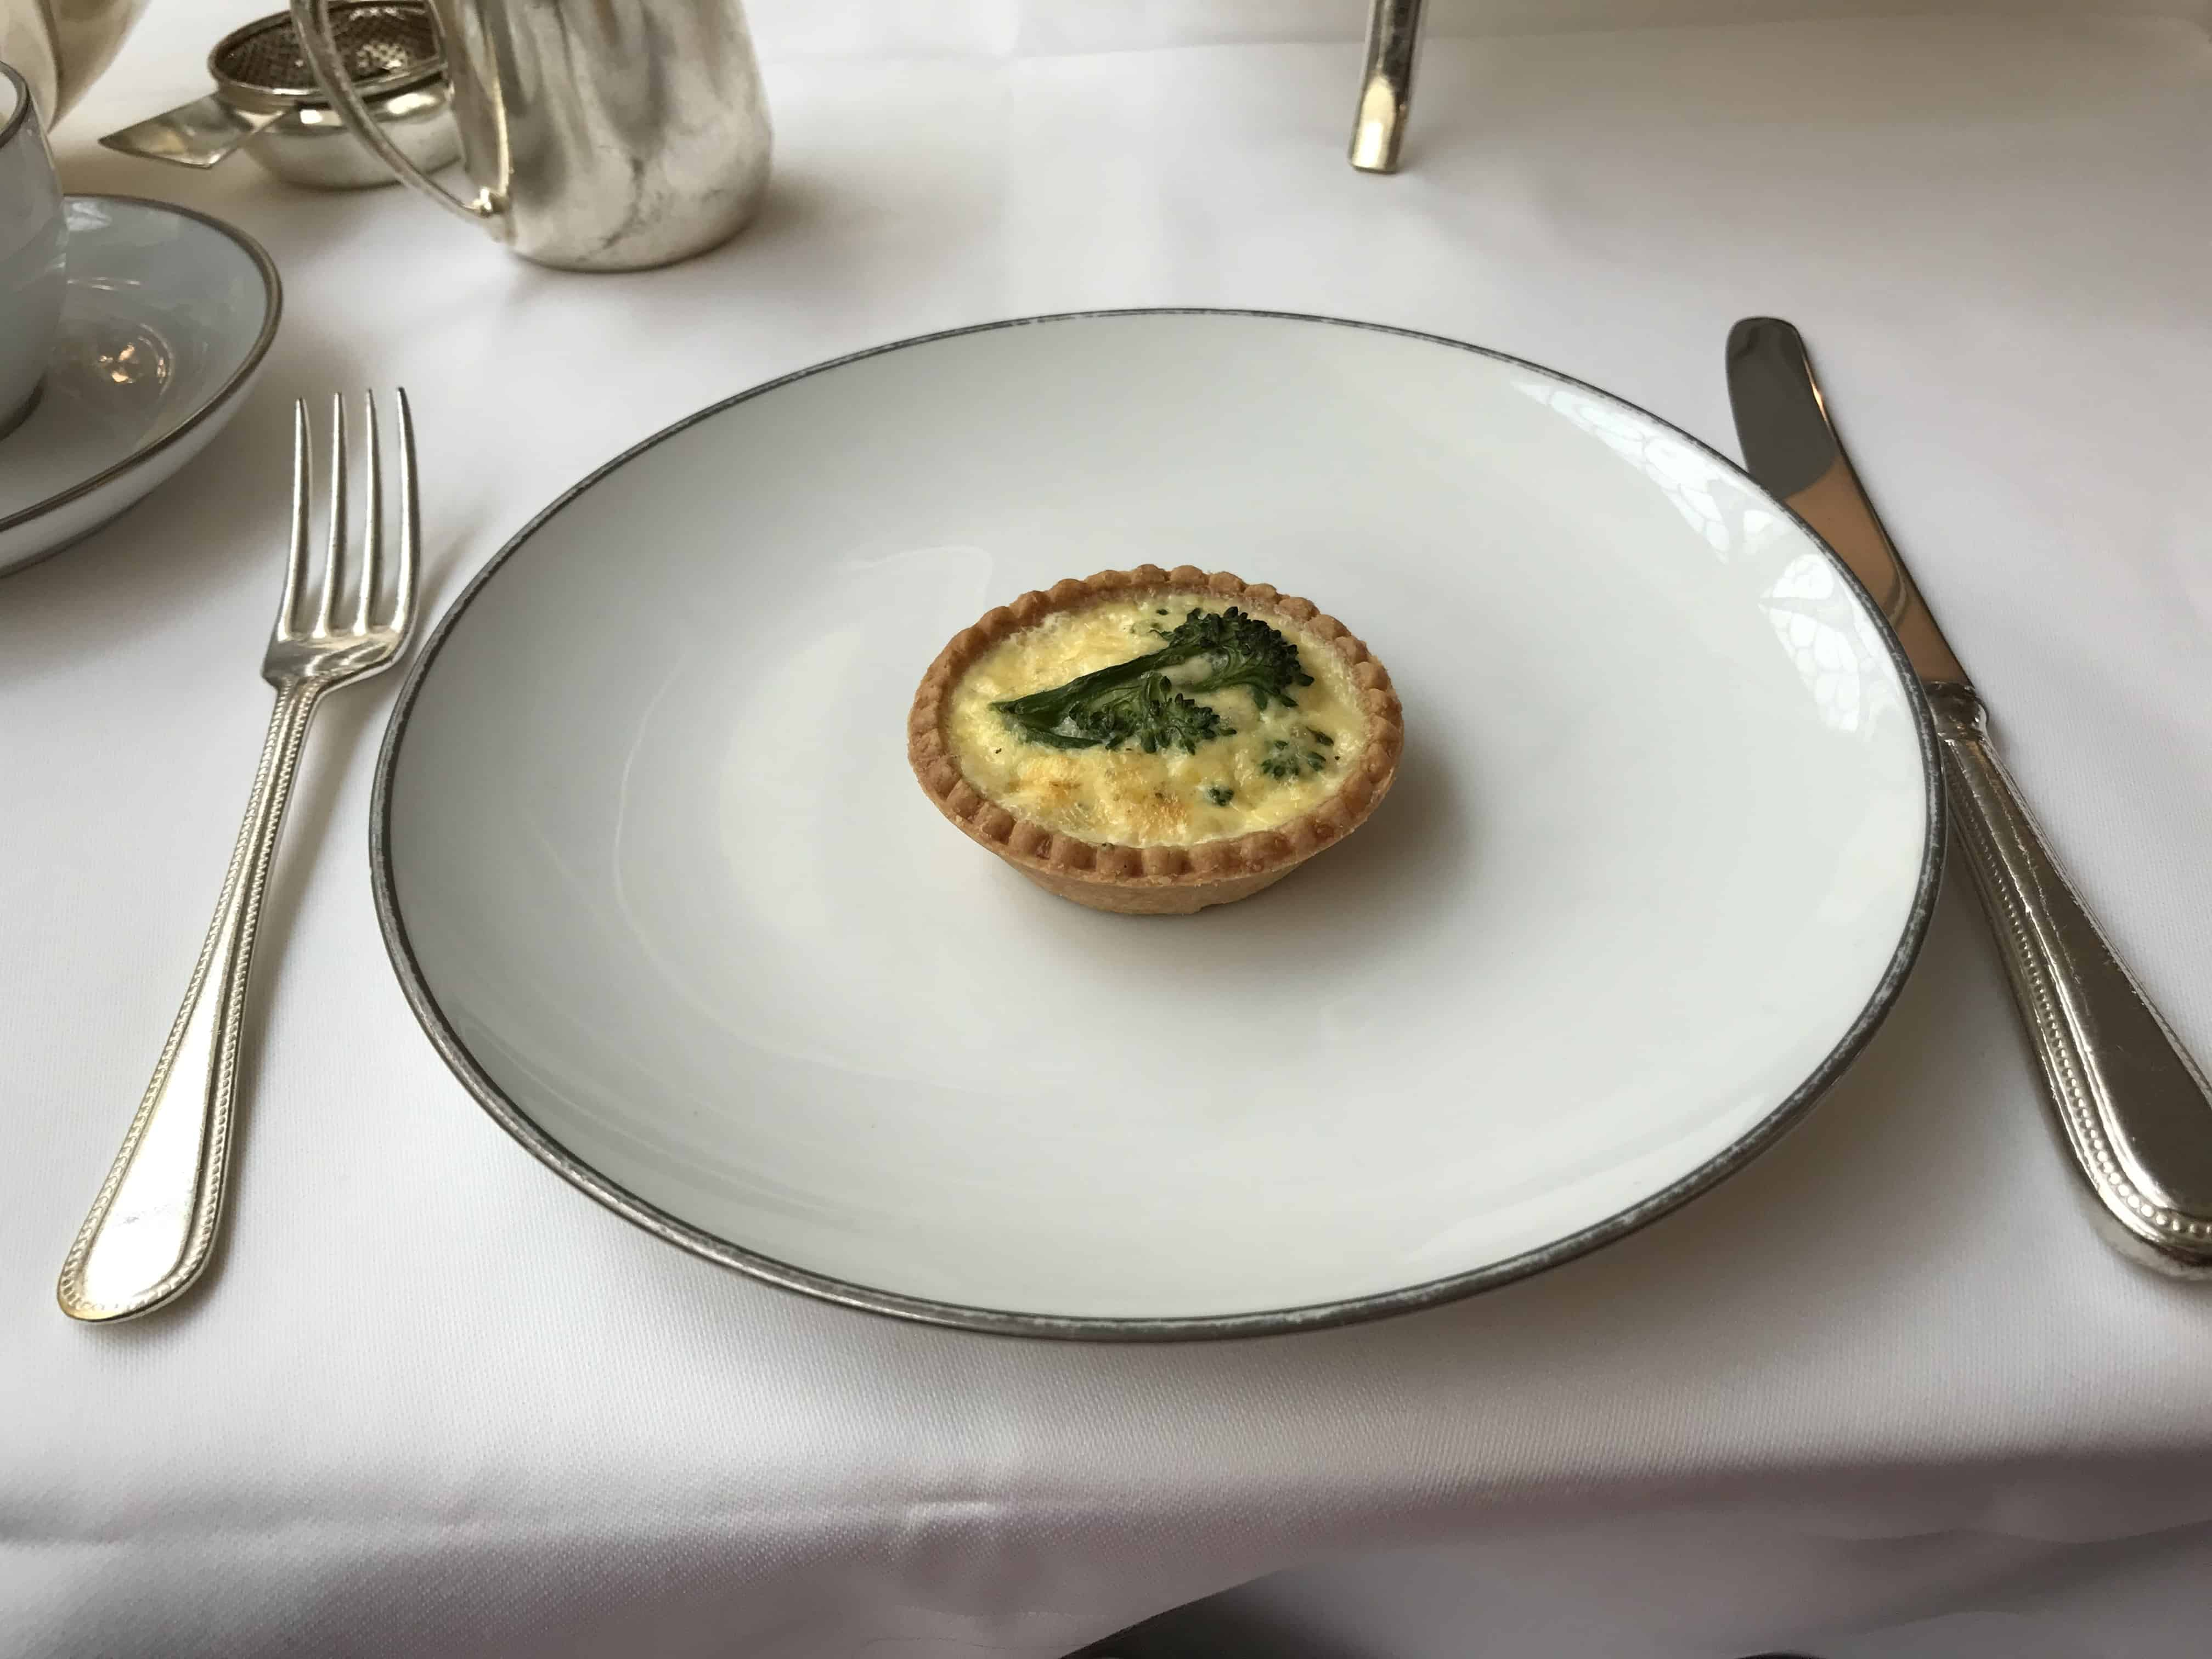 Savory Broccoli Tart Afternoon Tea Harrods Georgian Room